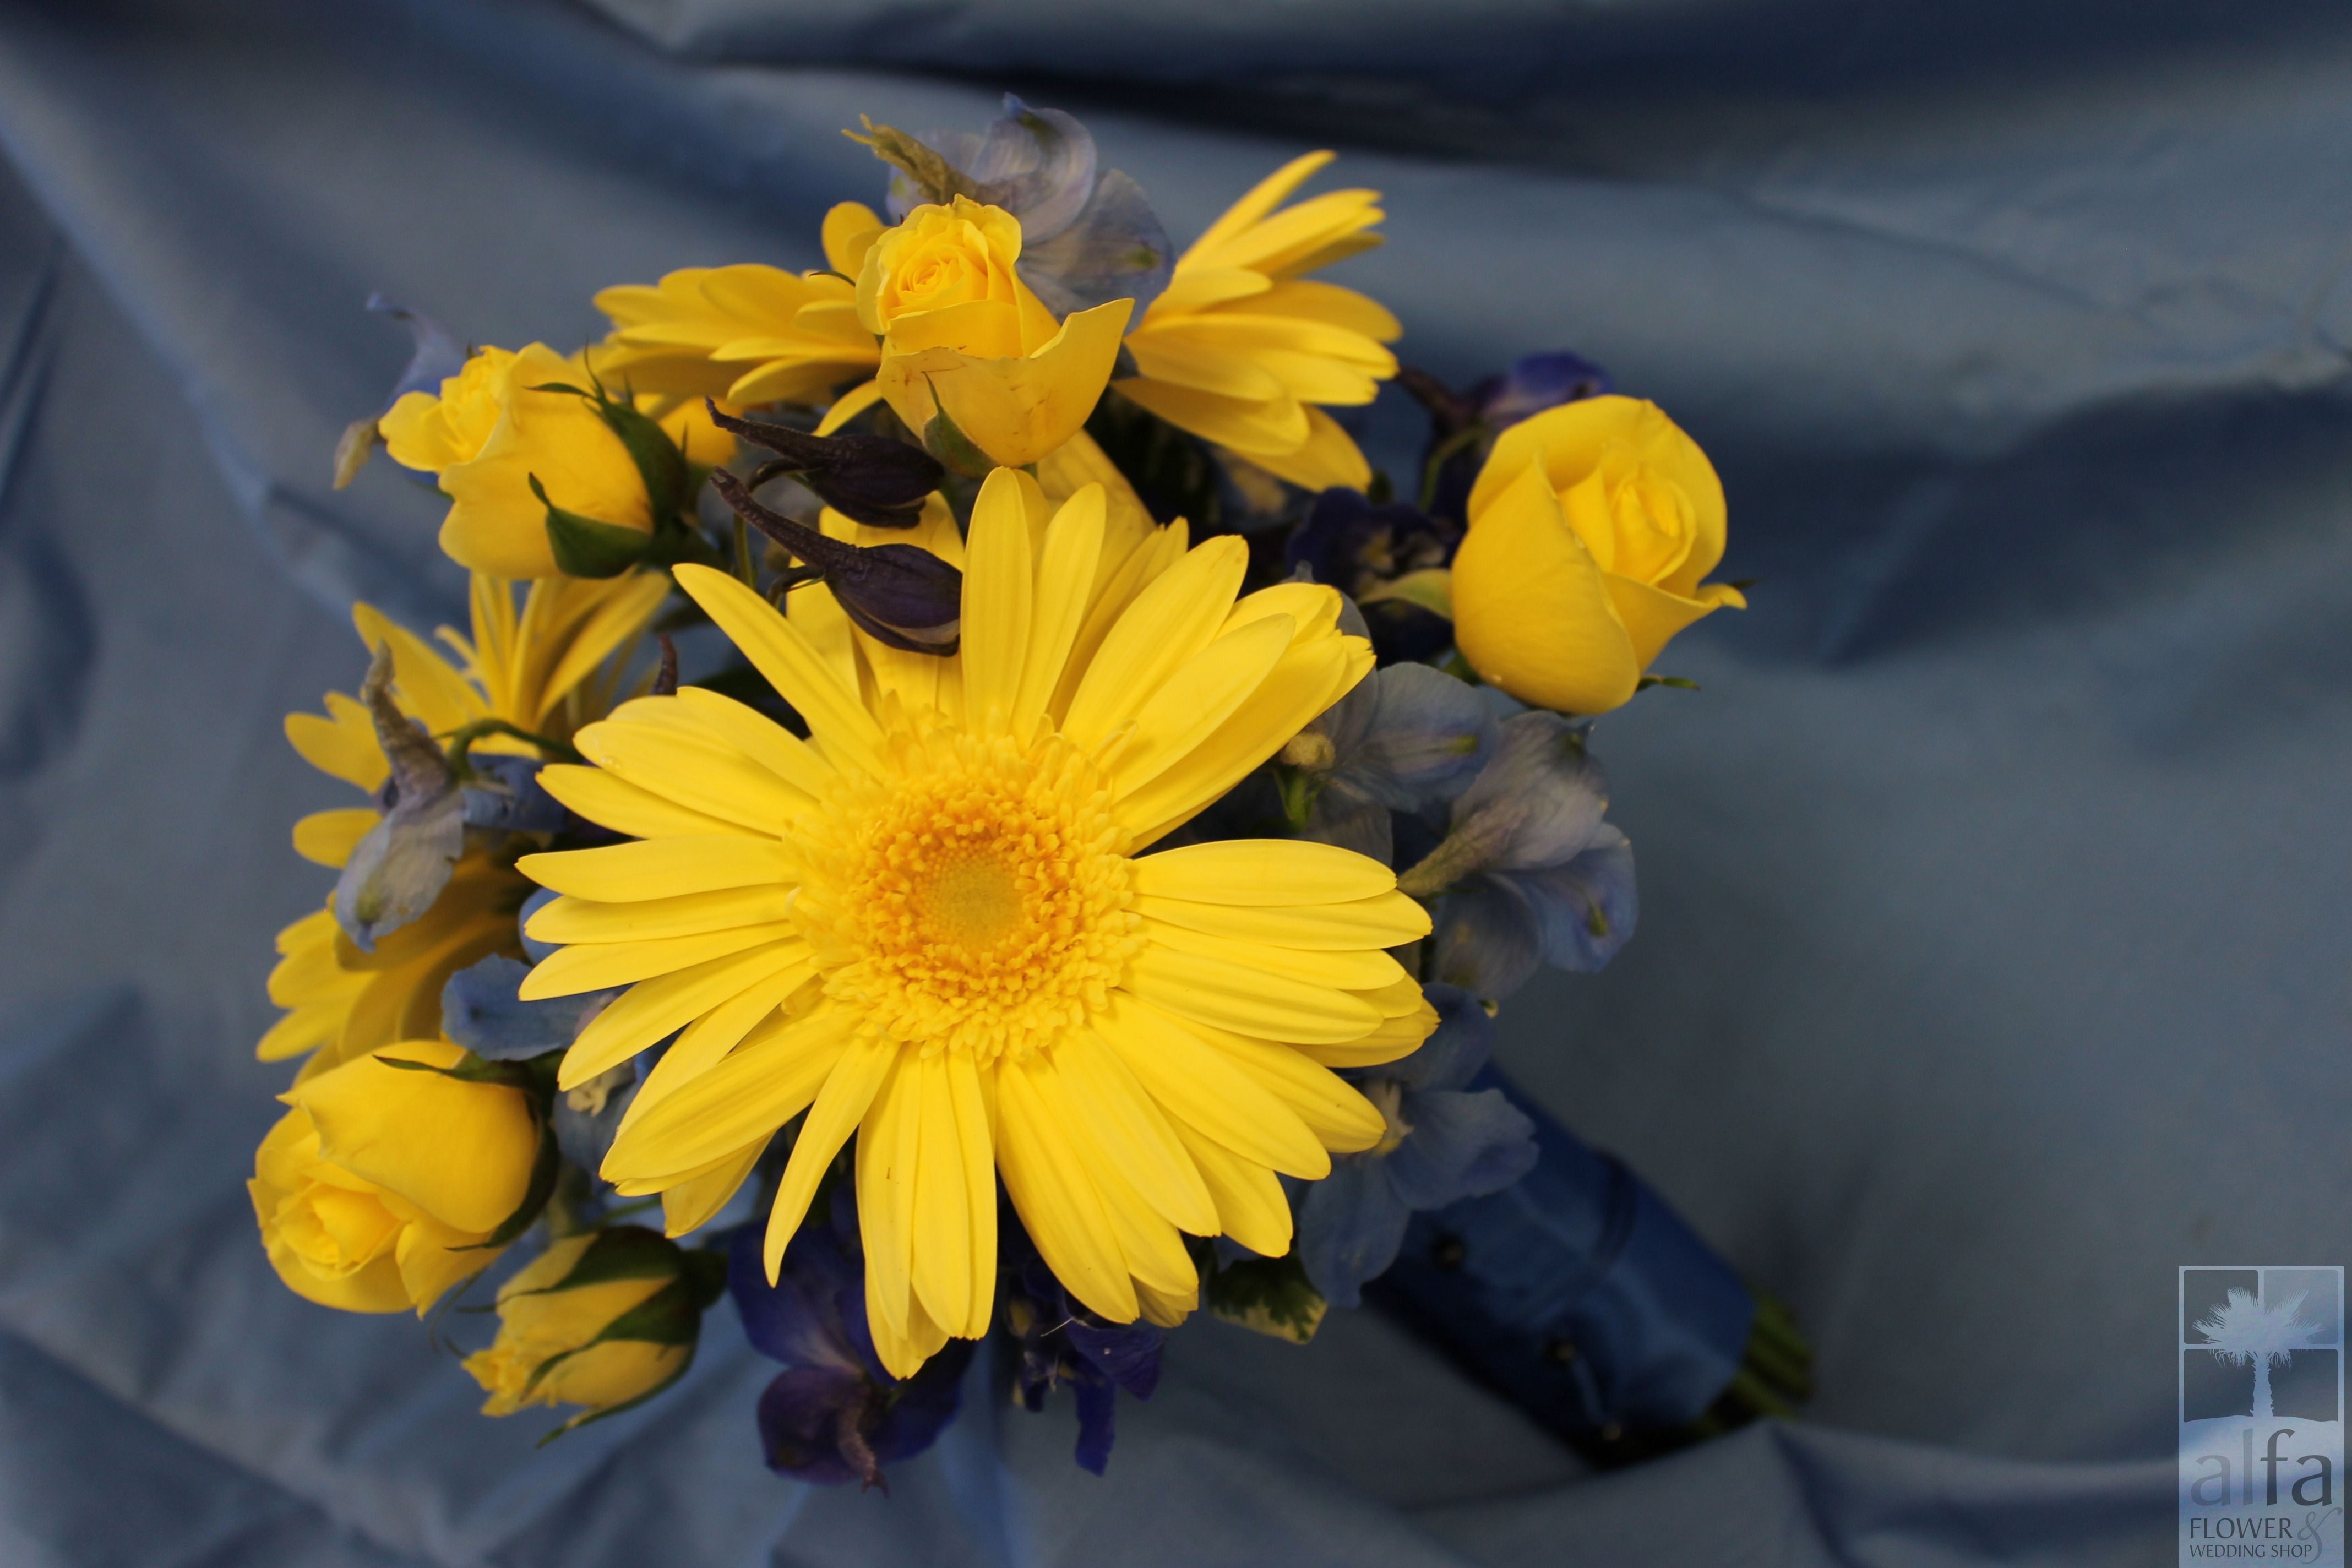 Beautiful flowers for any shade of blue!